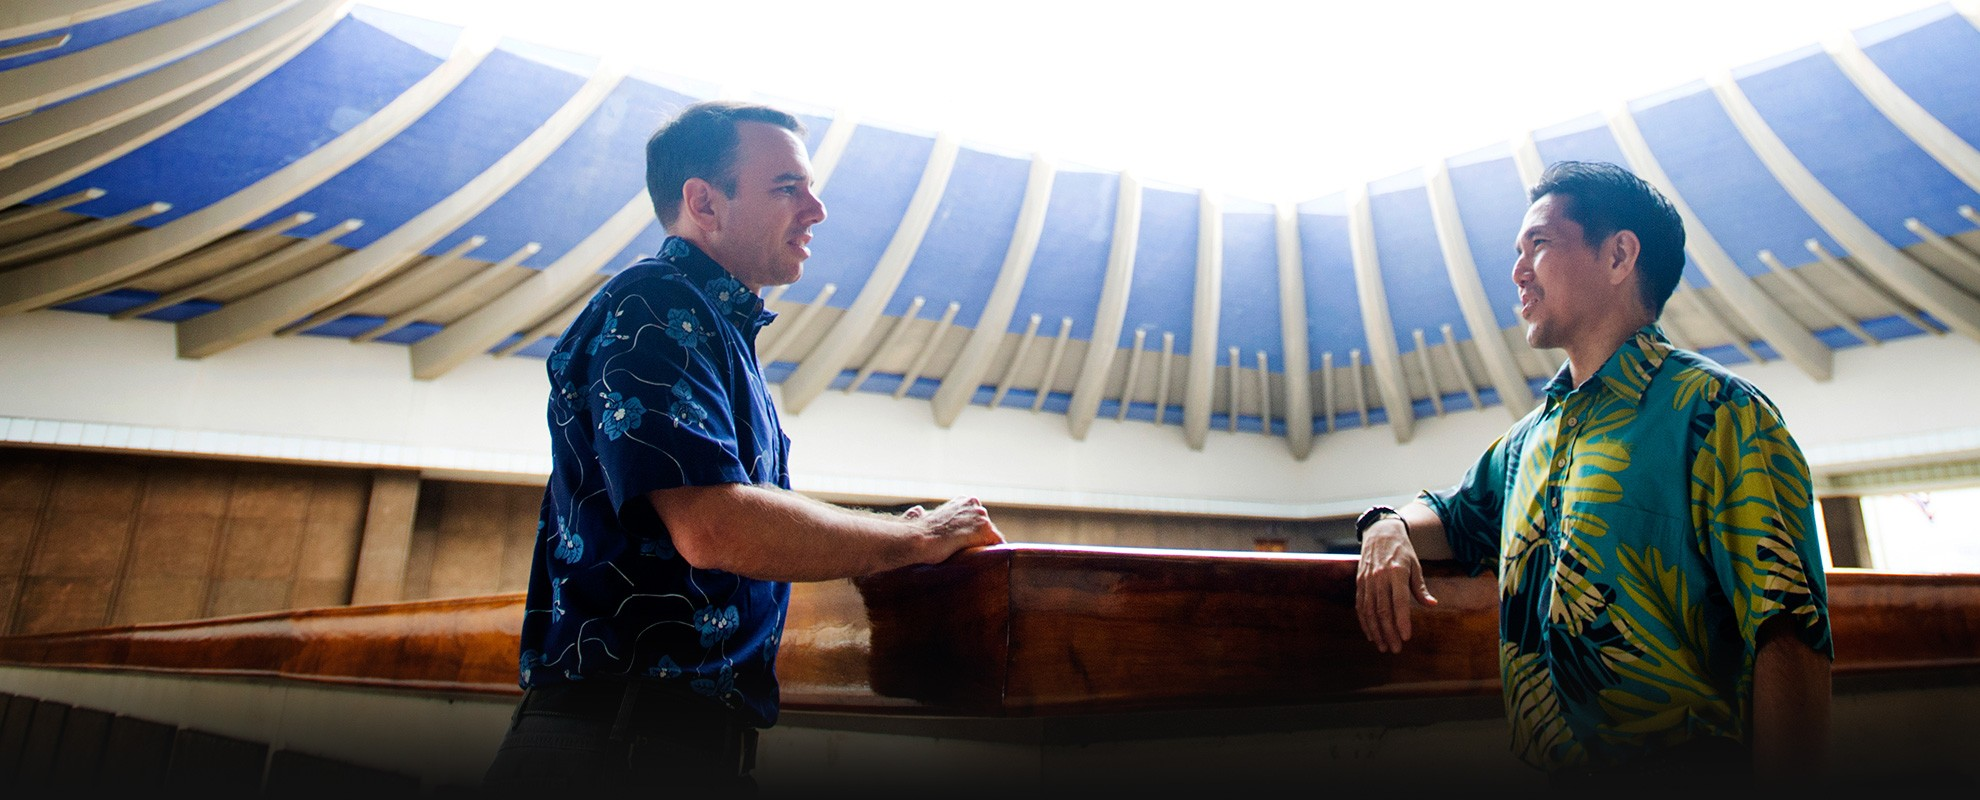 Isaac Moriwake (right), staff attorney in the Mid-Pacific Office, speaks with Mark Duda, a solar industry leader and longtime Earthjustice partner, in Hawaiʻi's State Capitol.